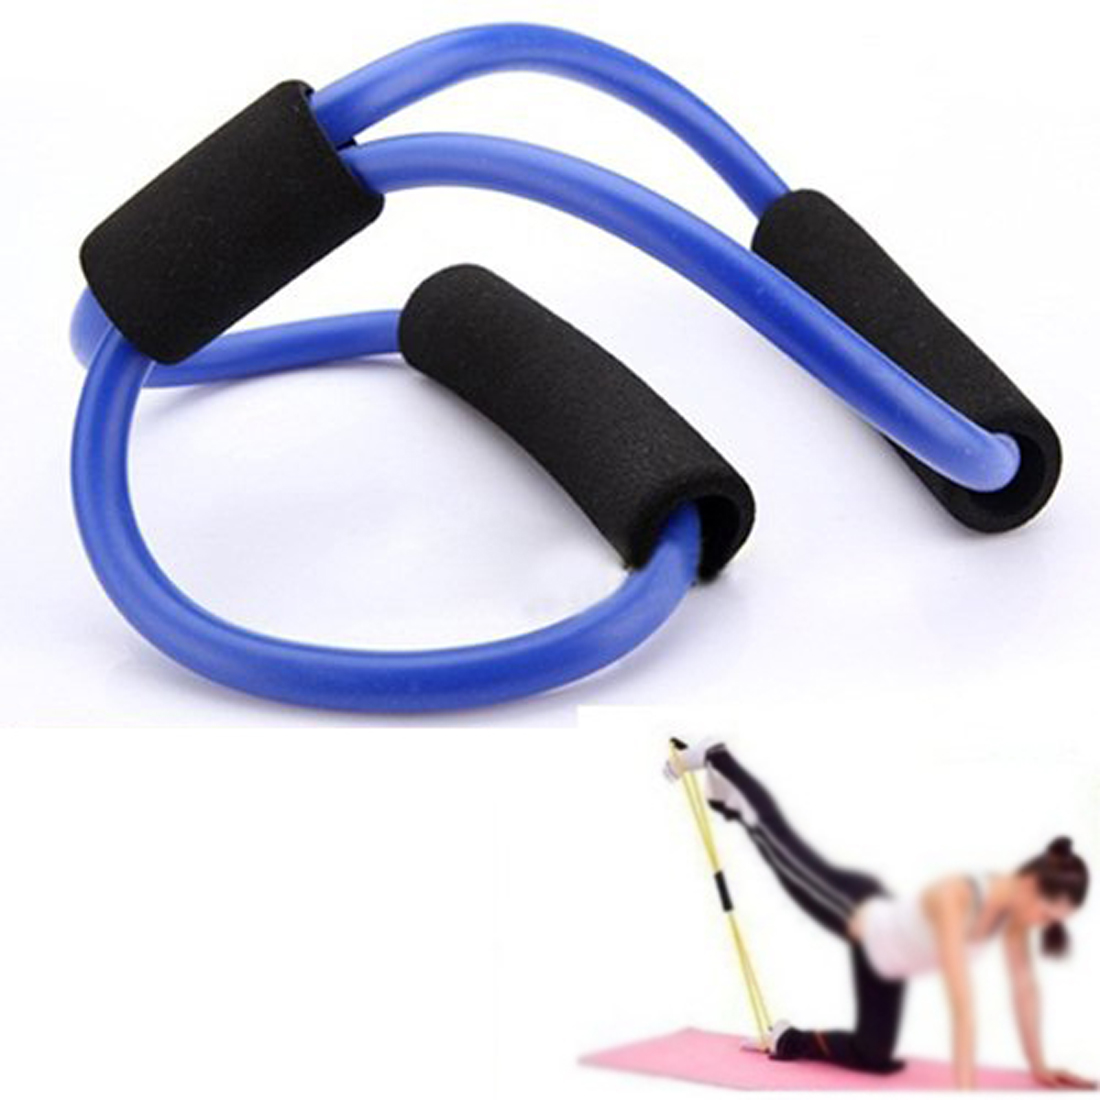 Super sell Yoga Resistance Bands Tube Stretch Fitness Pilates Exercise Tool